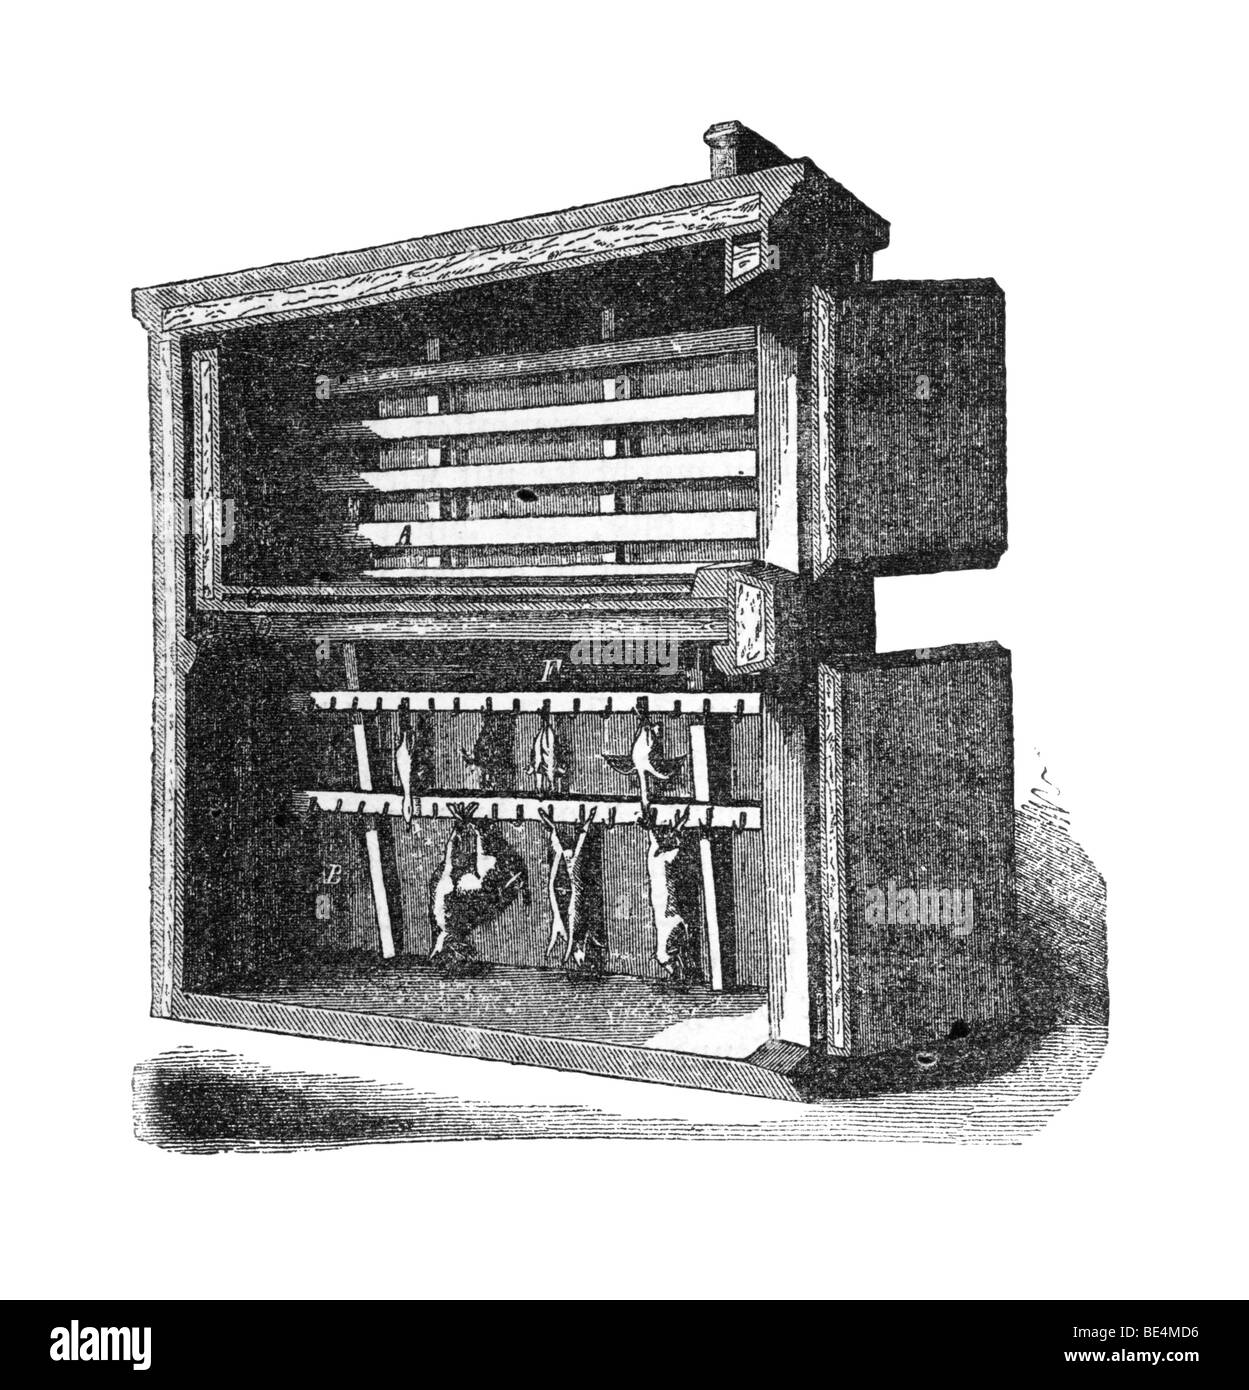 Improved ice box, historical illustration from: Marie Adenfeller, Friedrich Werner: Illustriertes Koch- und Haushaltungsbuch, - Stock Image